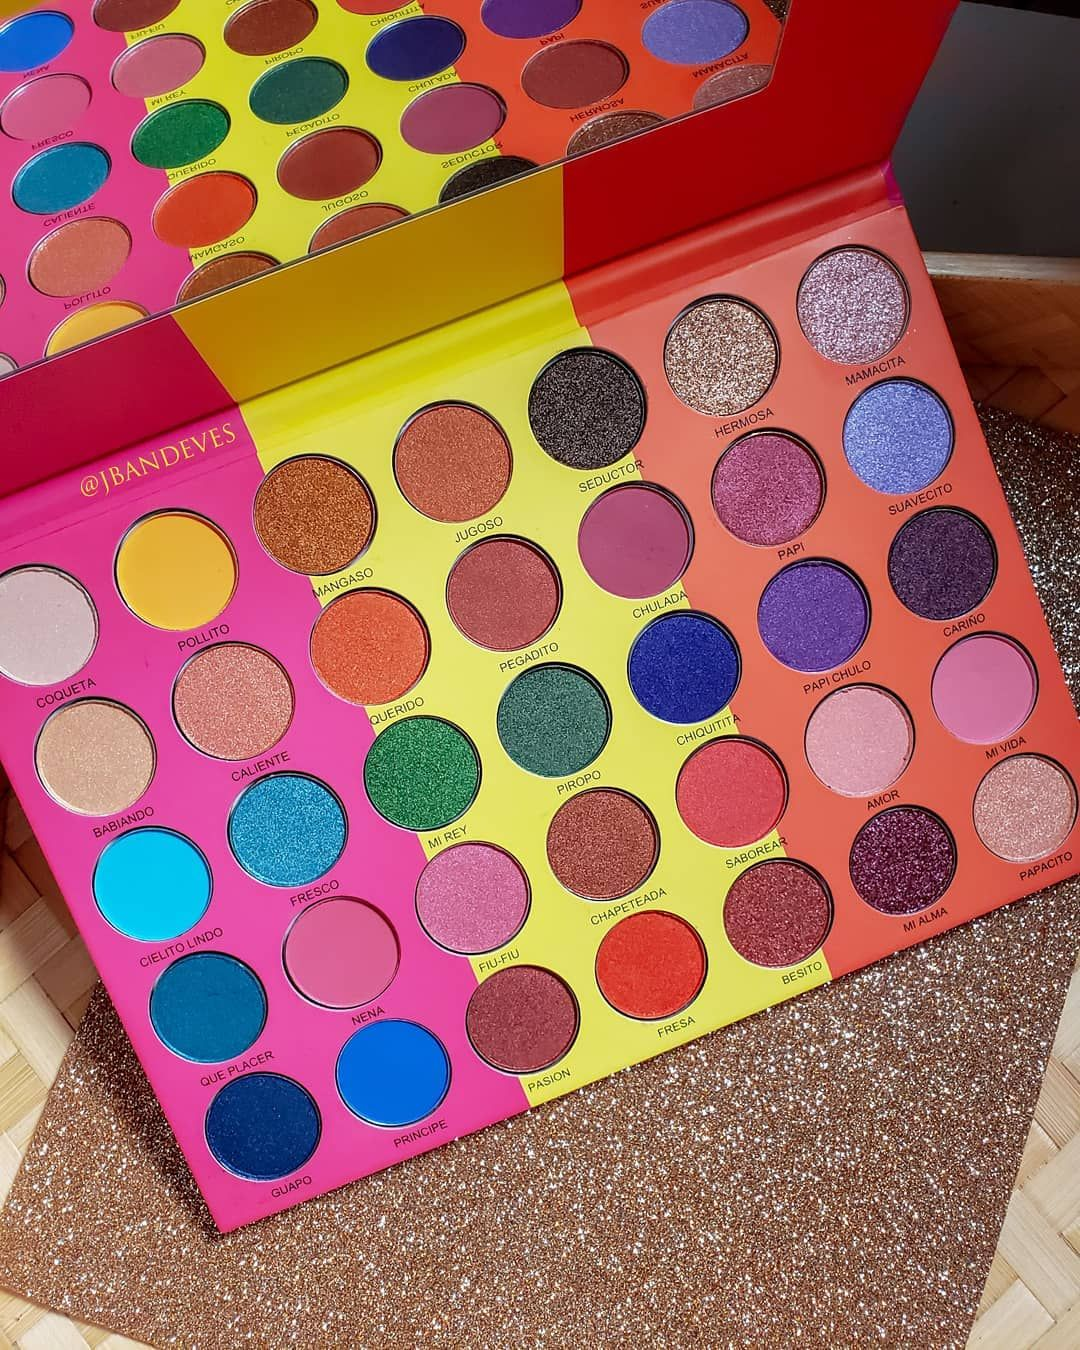 Prolux Que Mango is a highly pigmented palette featuring